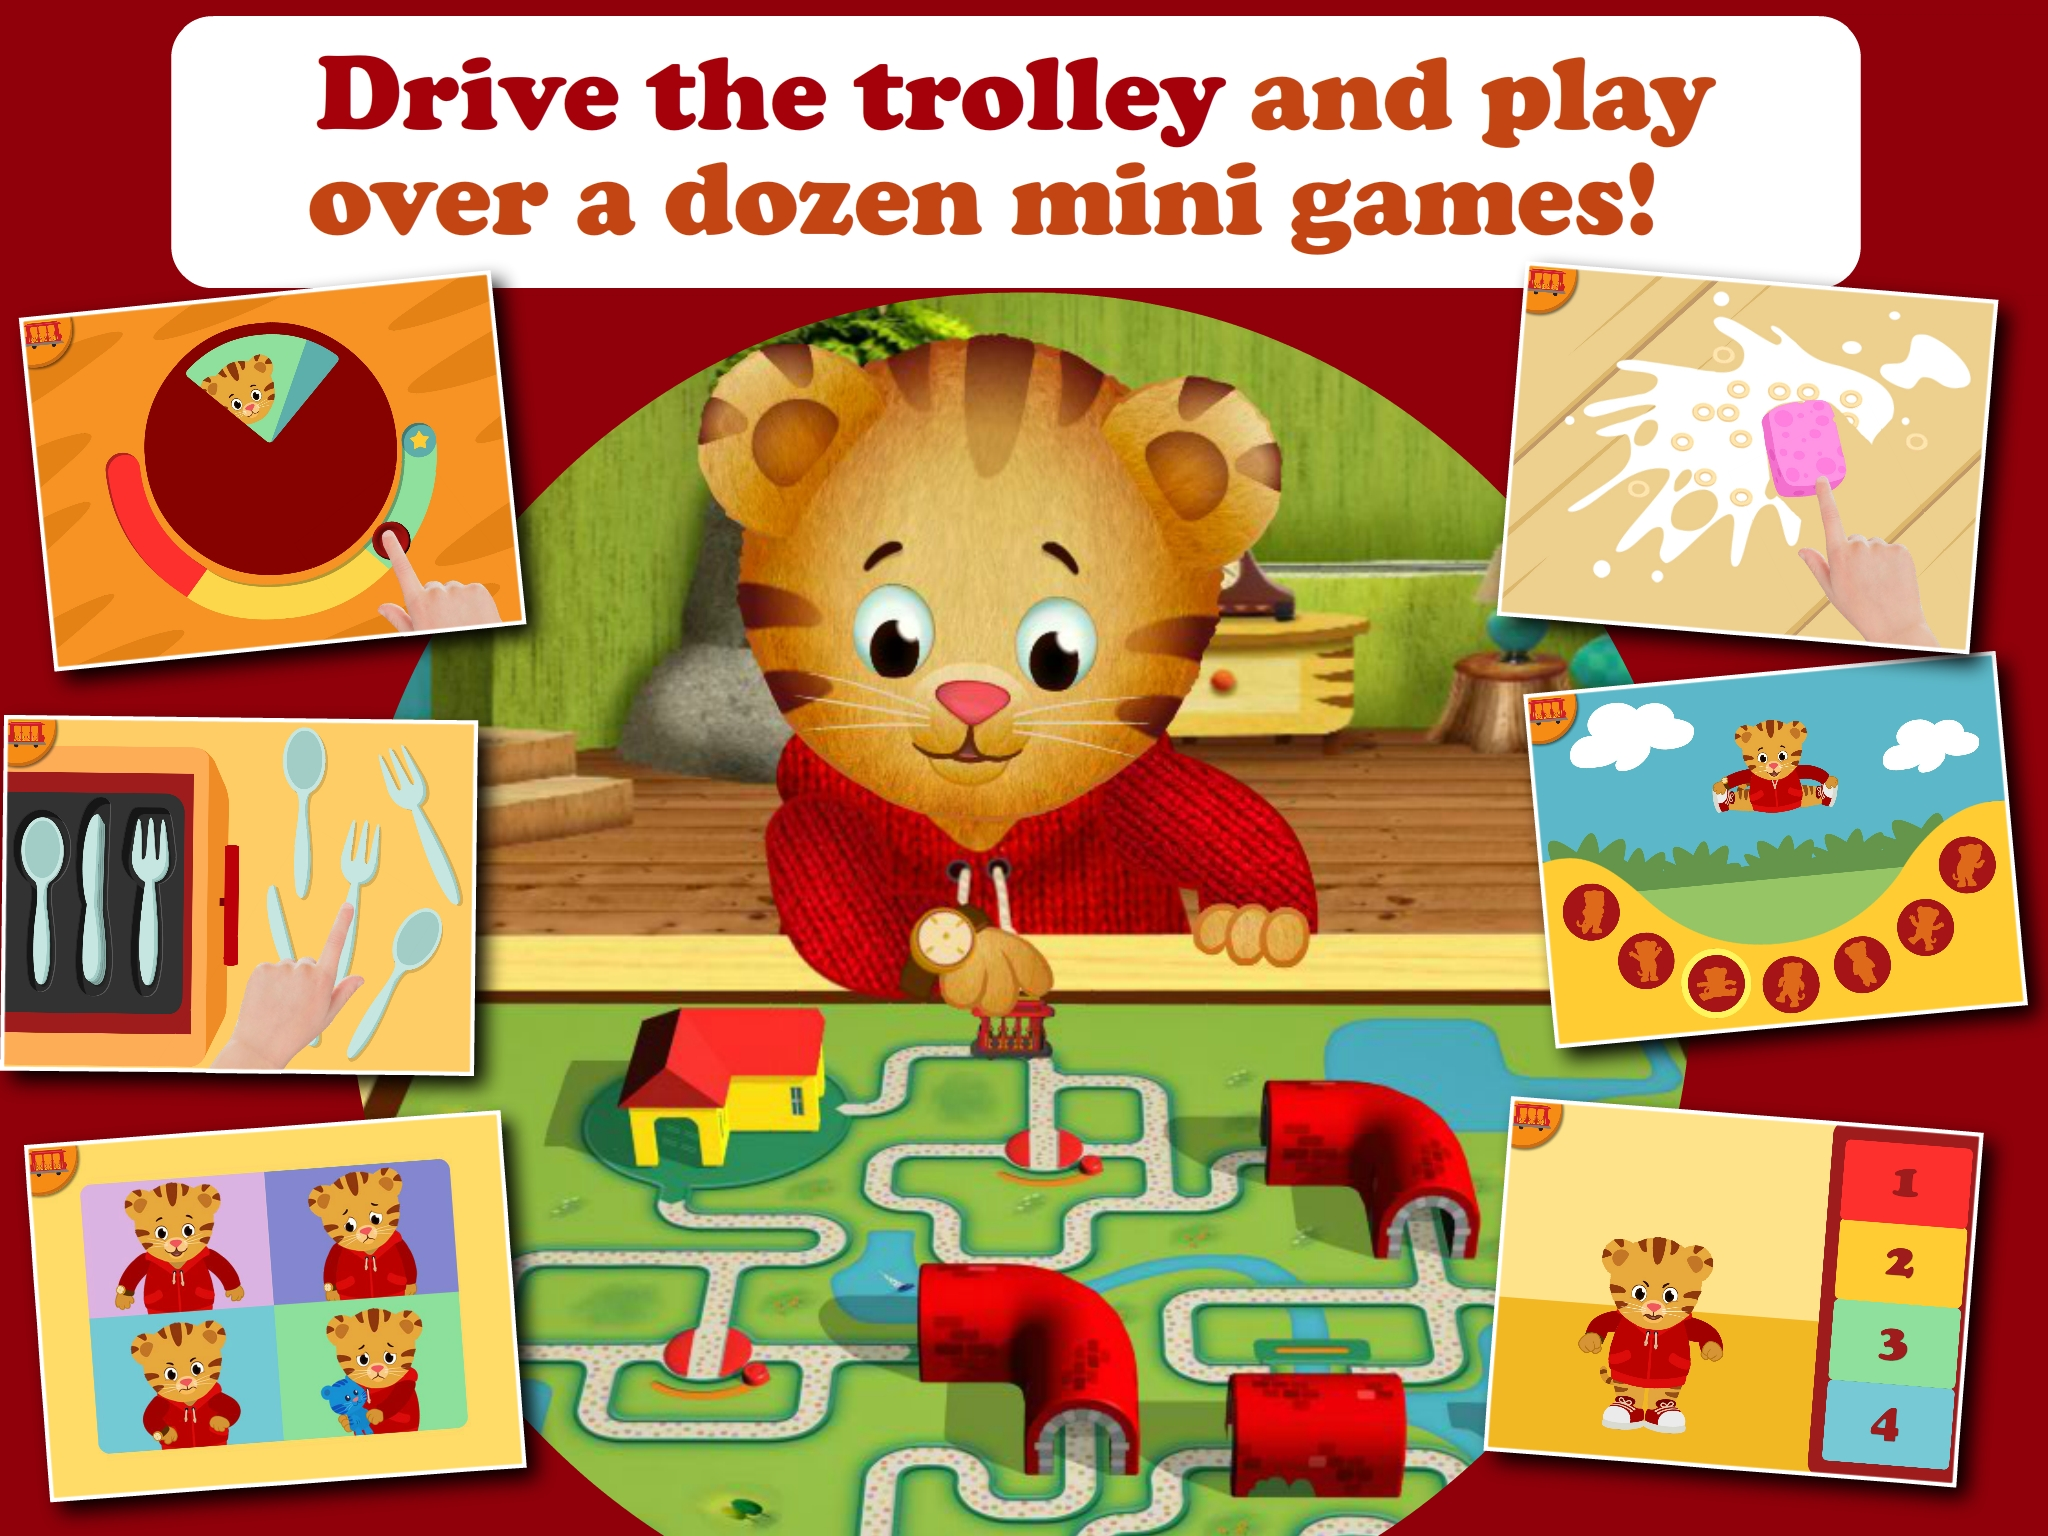 Daniel Tiger's Grr-ific Feelings screenshot.